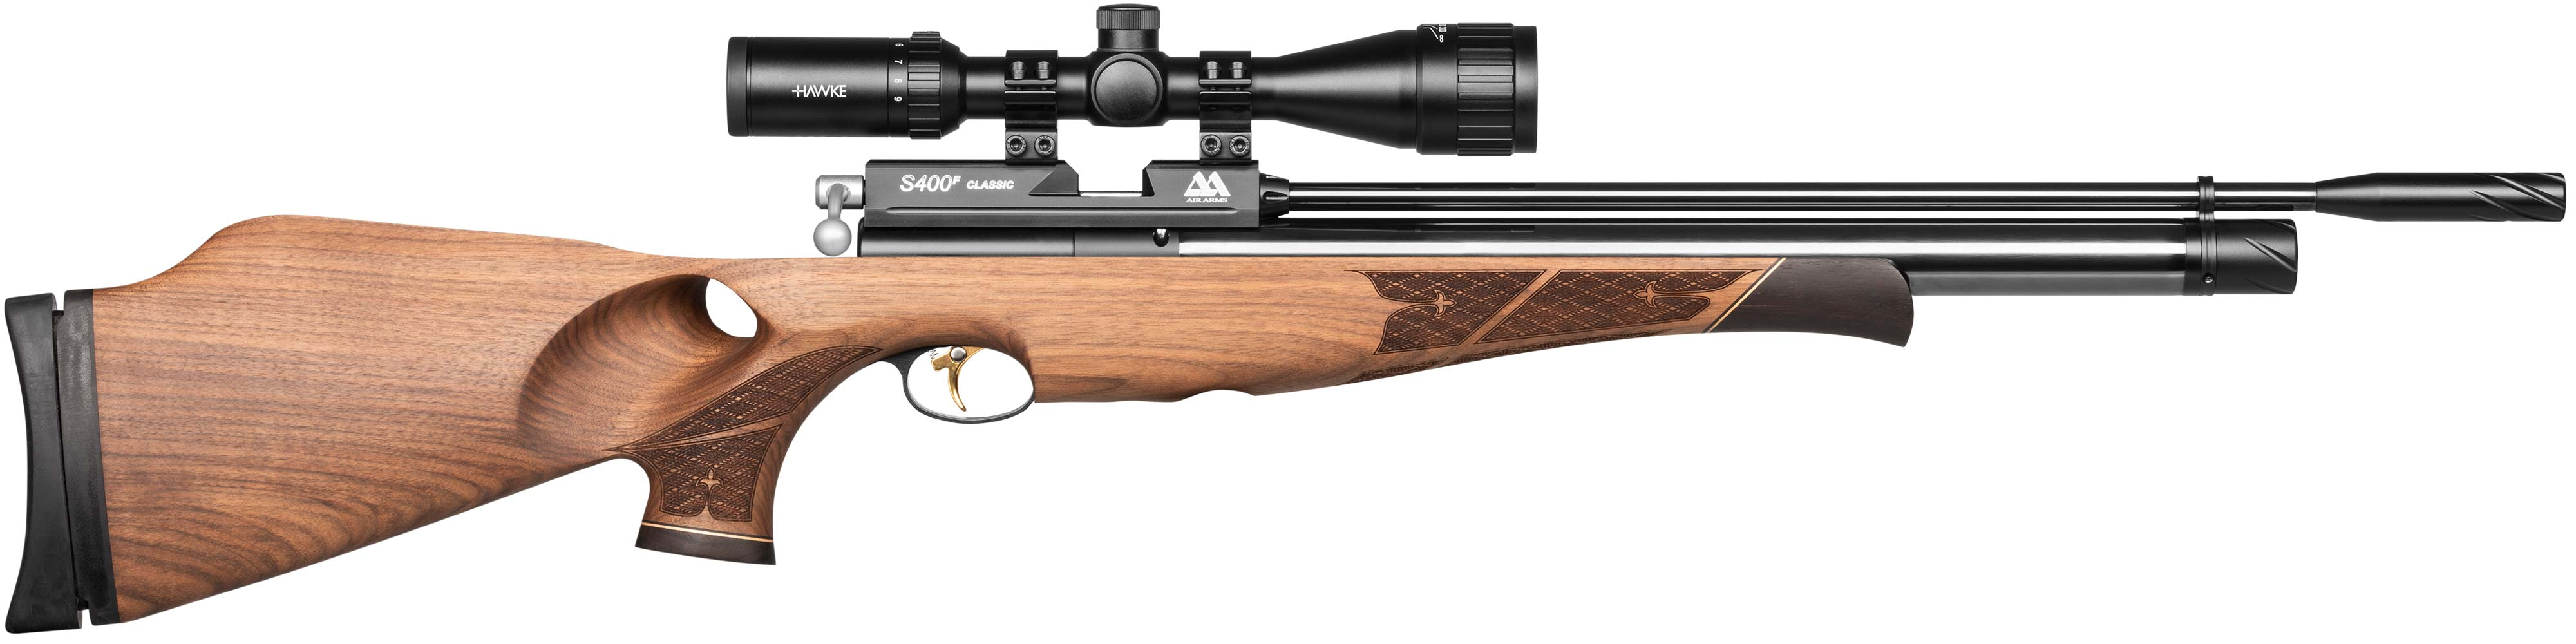 S400 Rifle Walnut Thumbhole